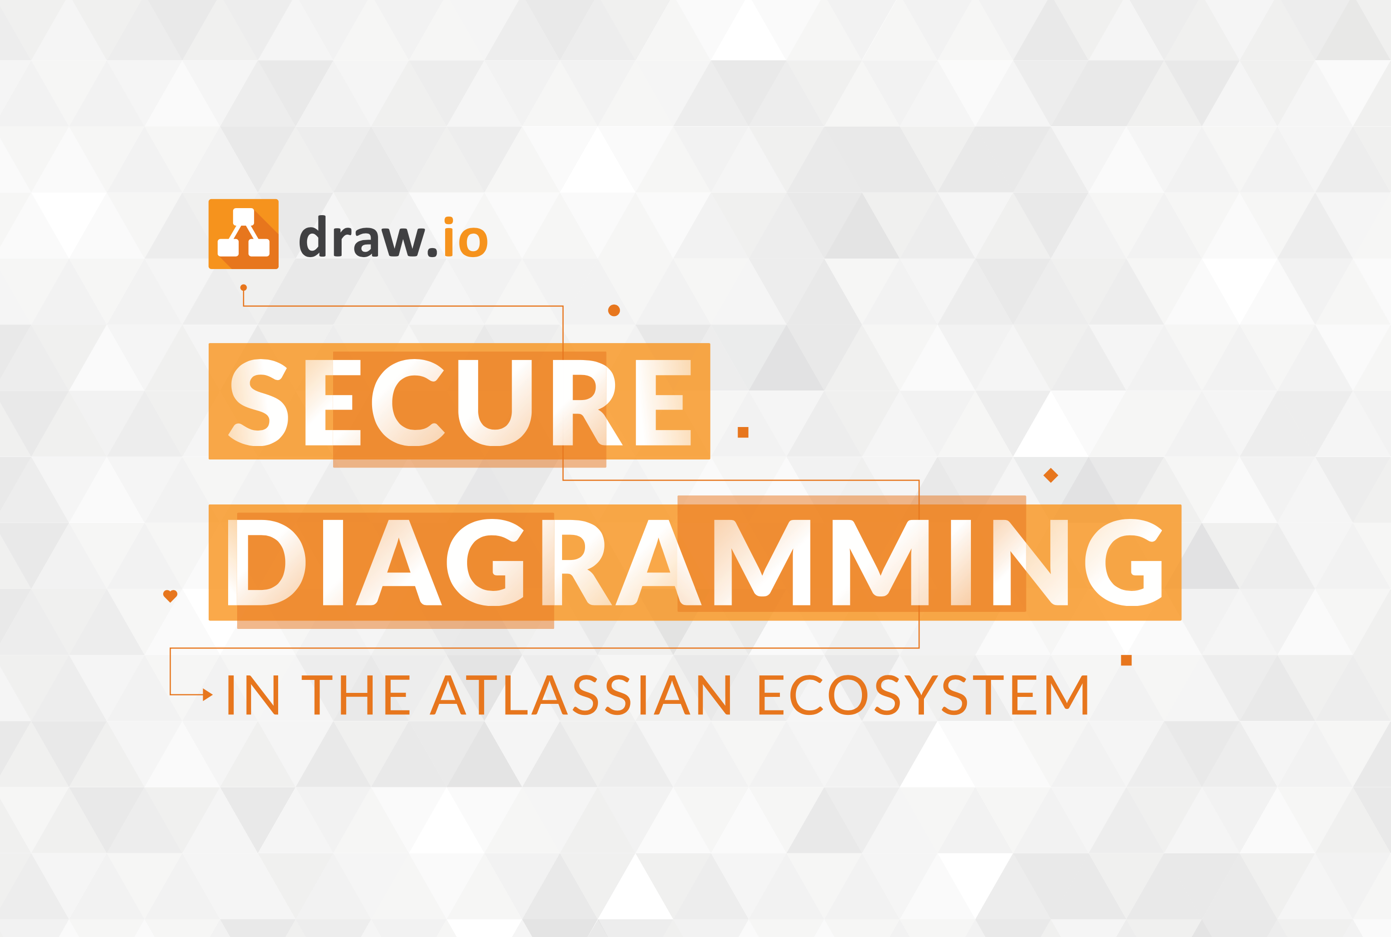 Secure diagramming in the Atlassian ecosystem